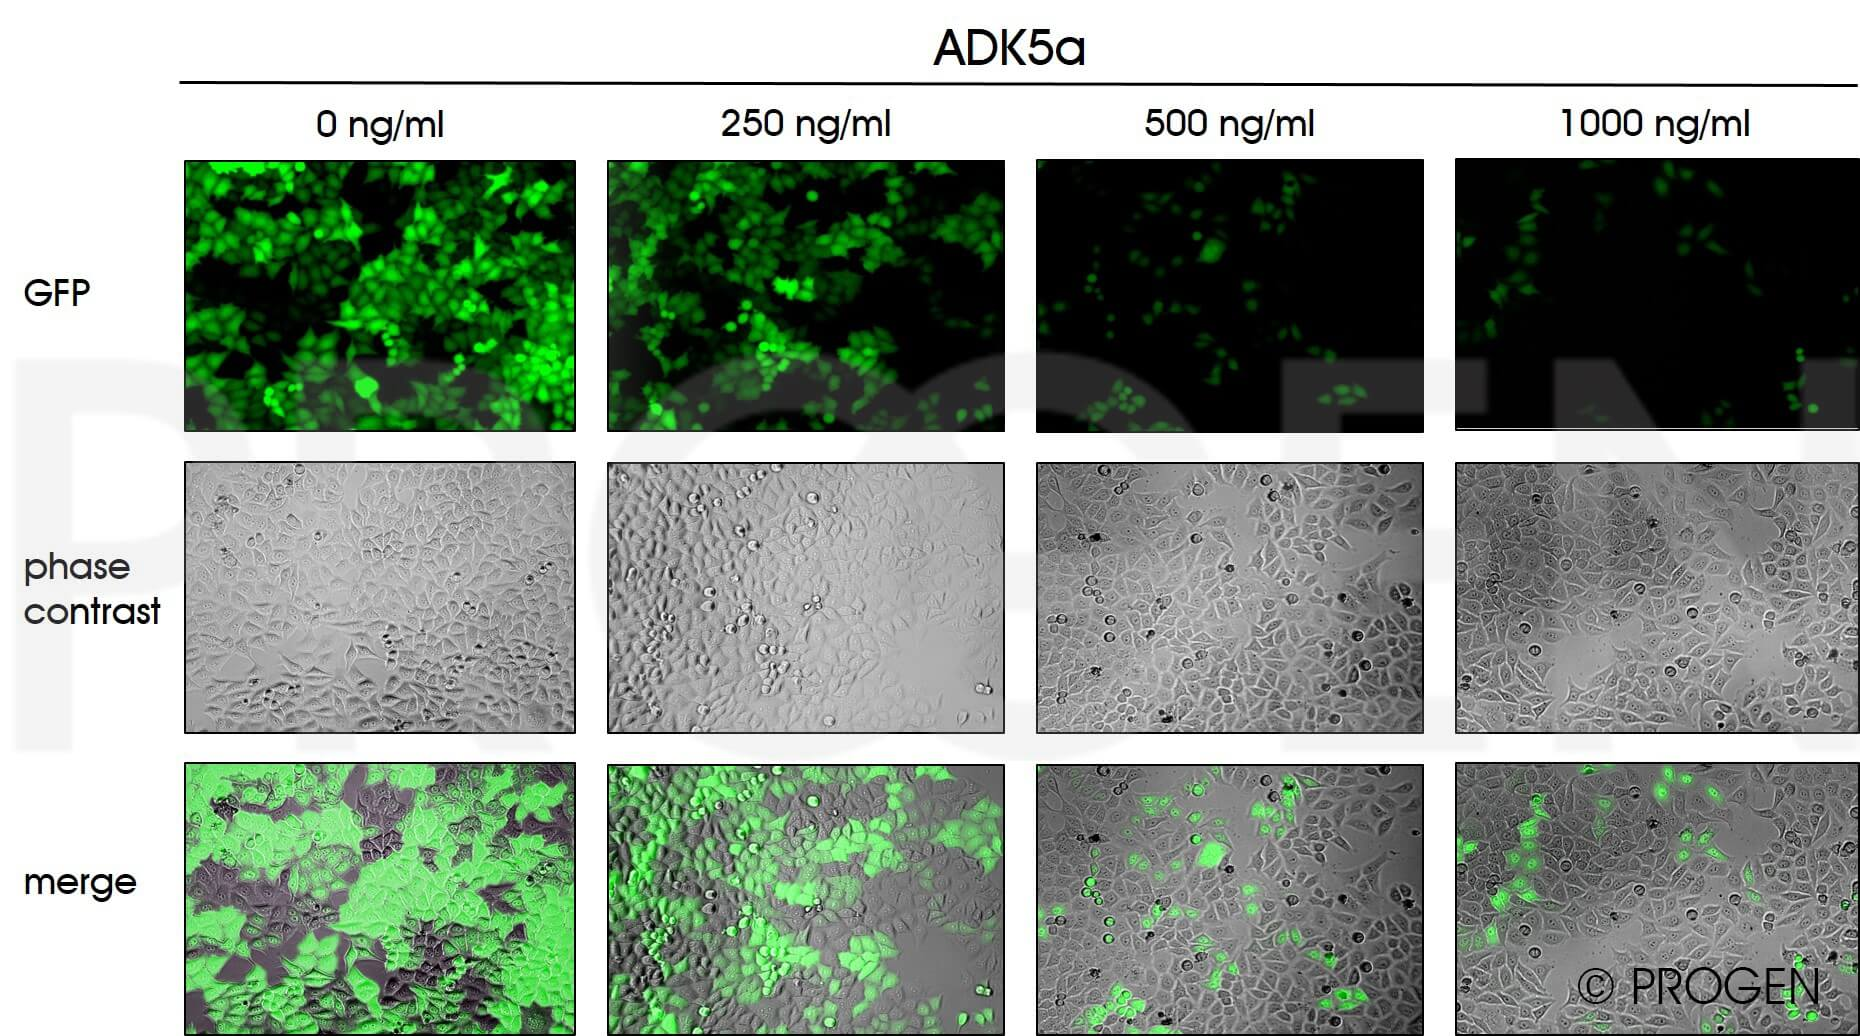 anti-AAV5 (intact particle) mouse monoclonal, ADK5a, lyophilized, purified